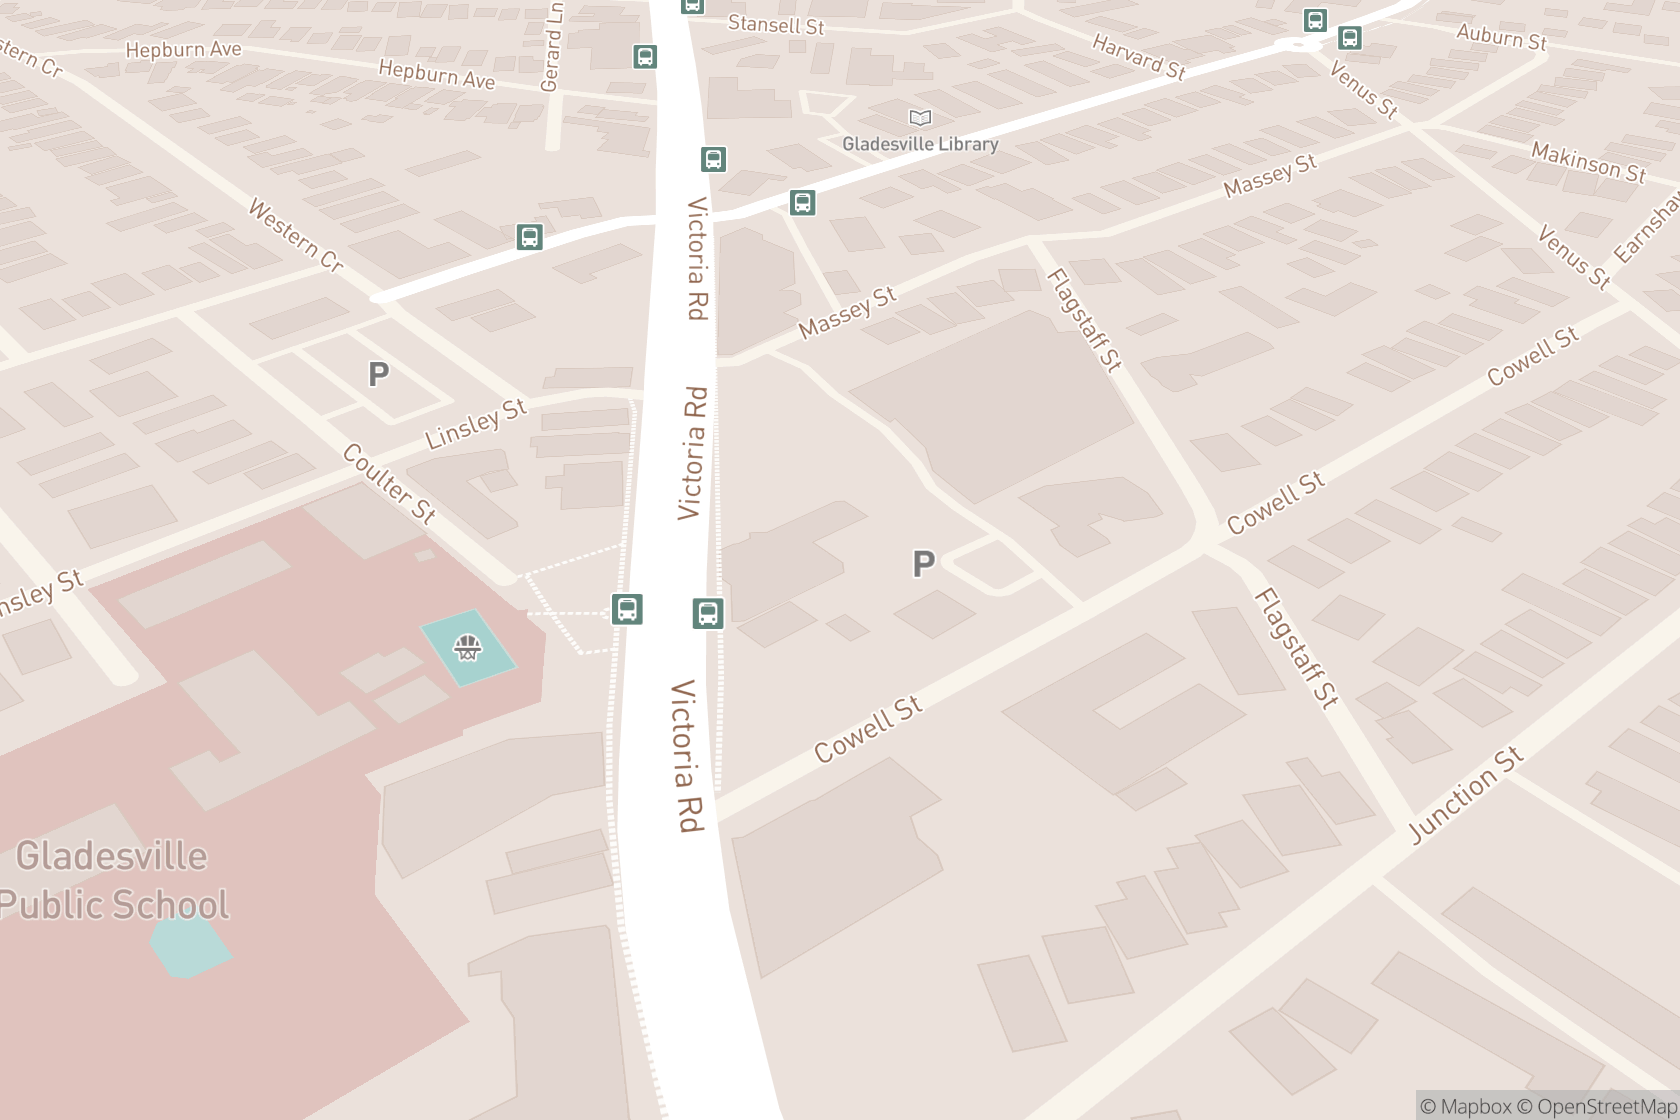 Trendy HairCut map location